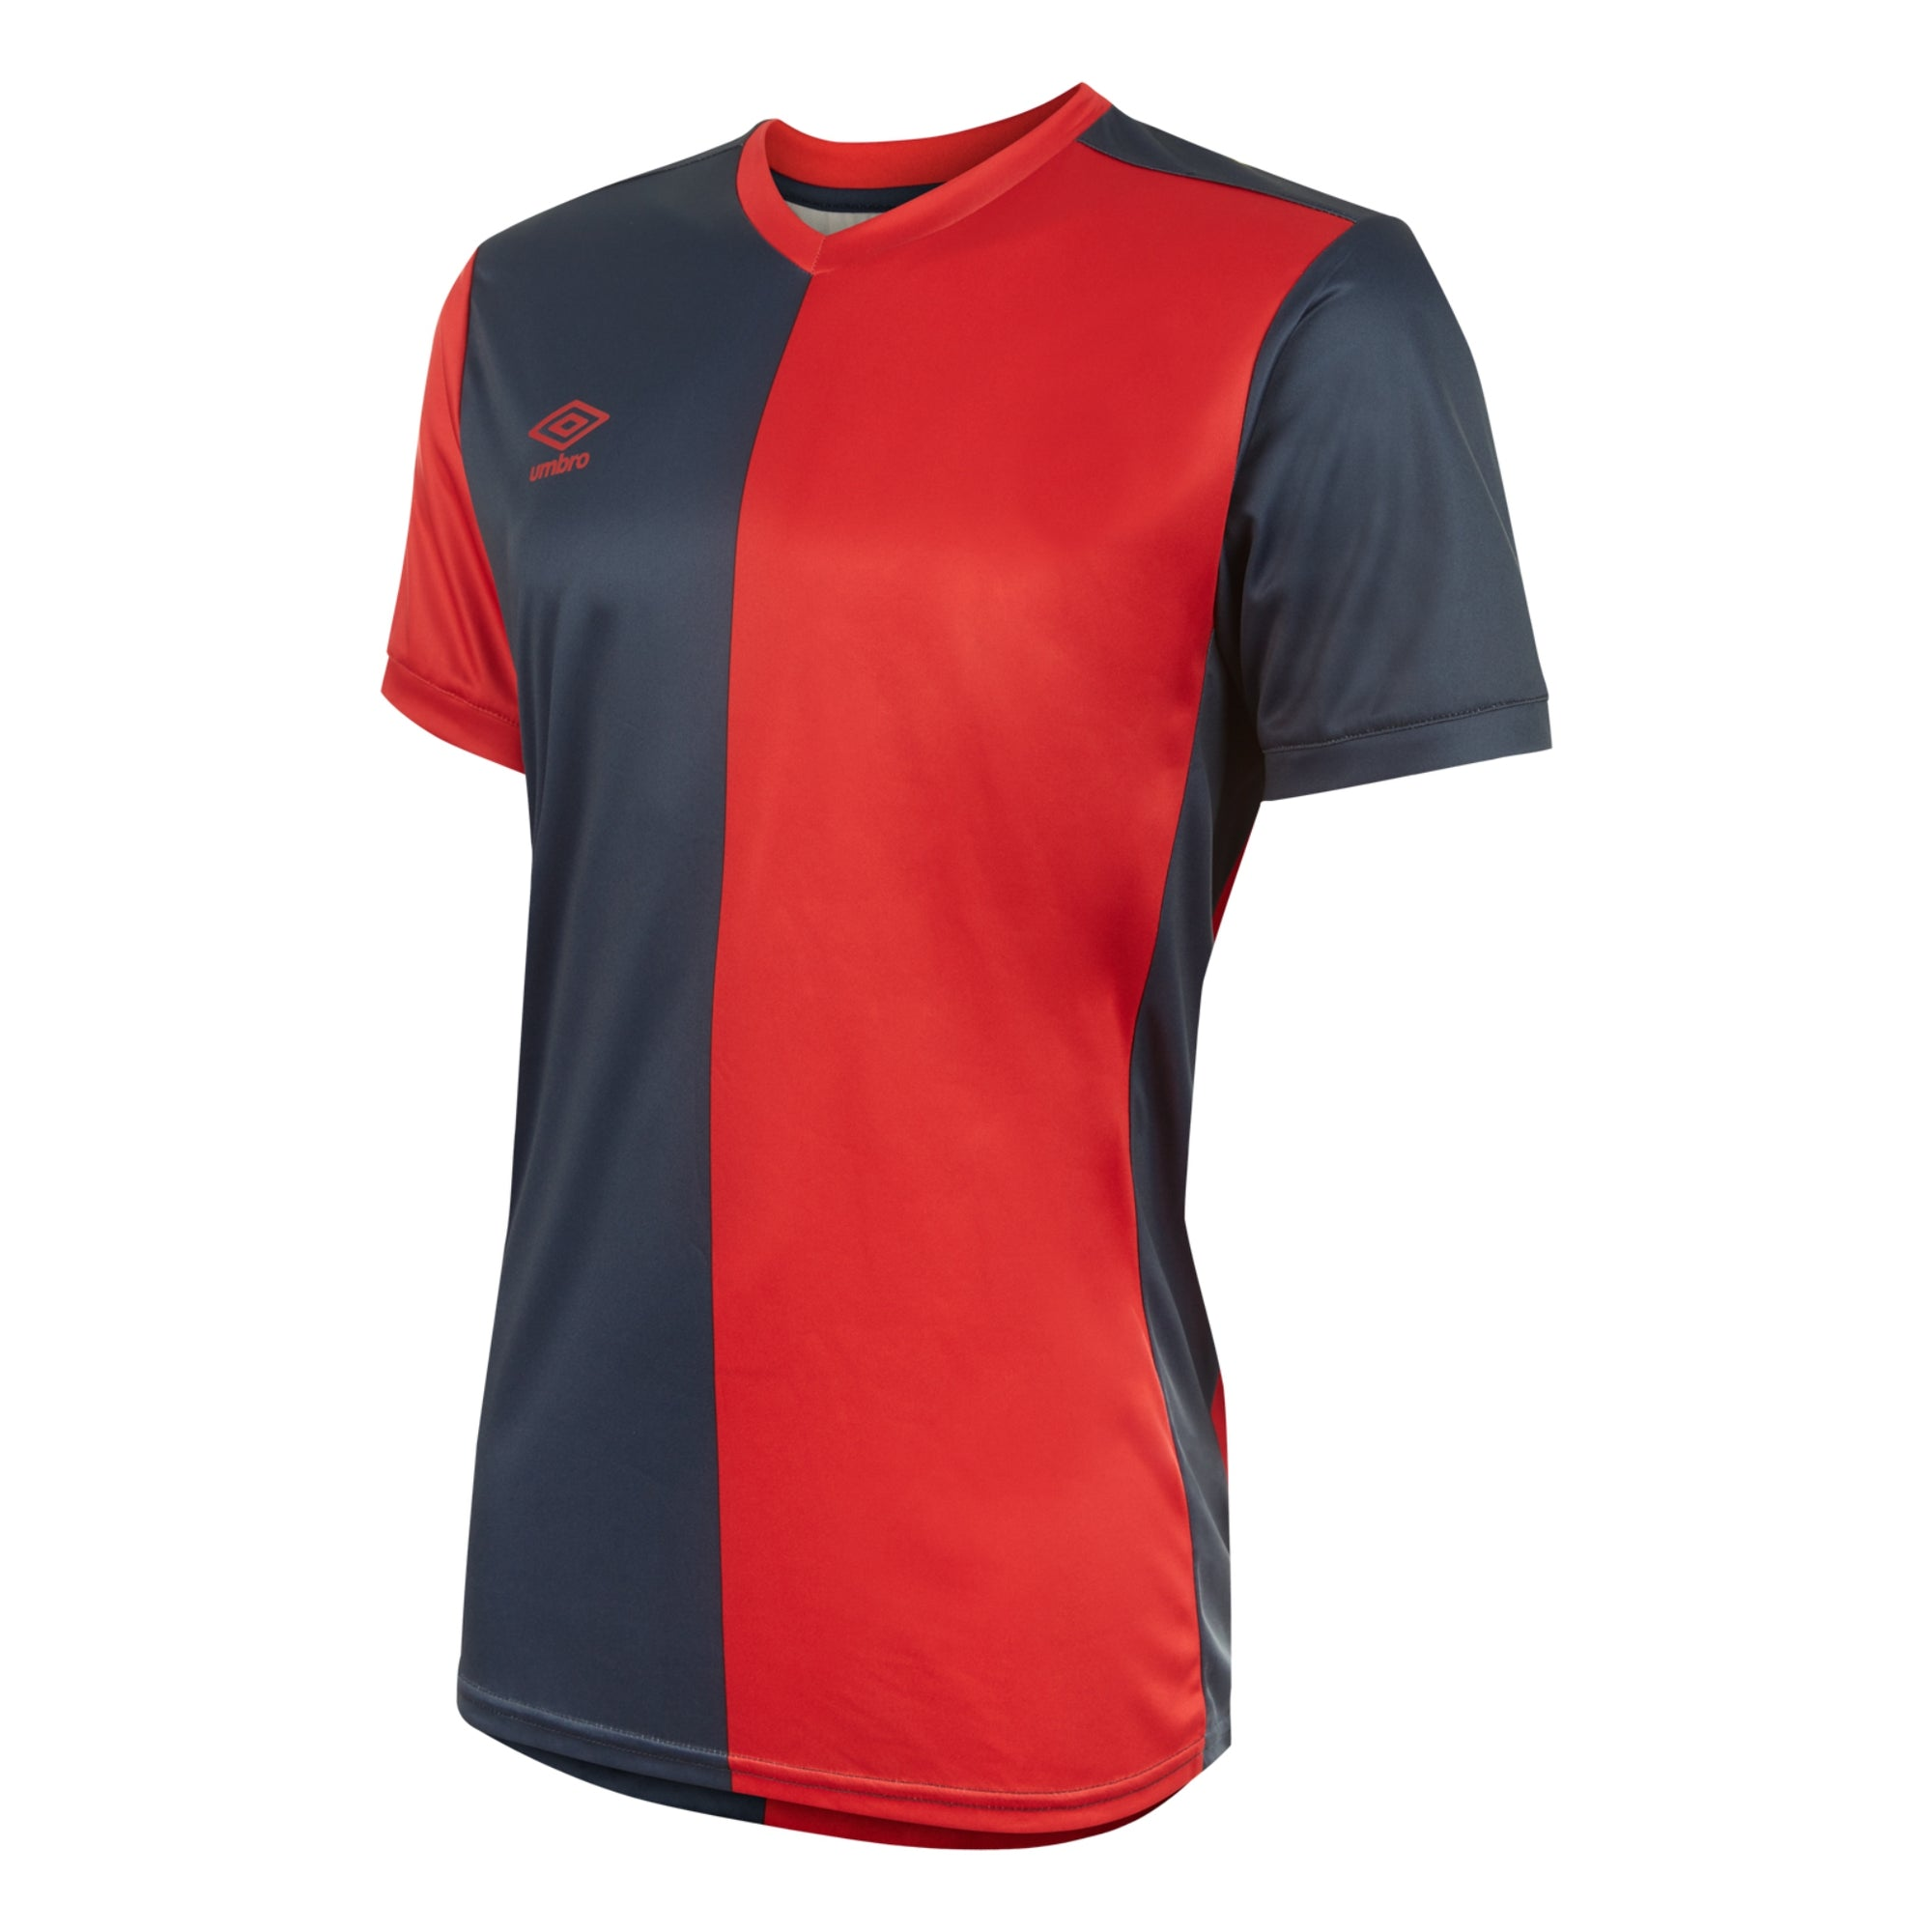 Umbro 50/50 SS Jersey - Vermillion/Dark Navy